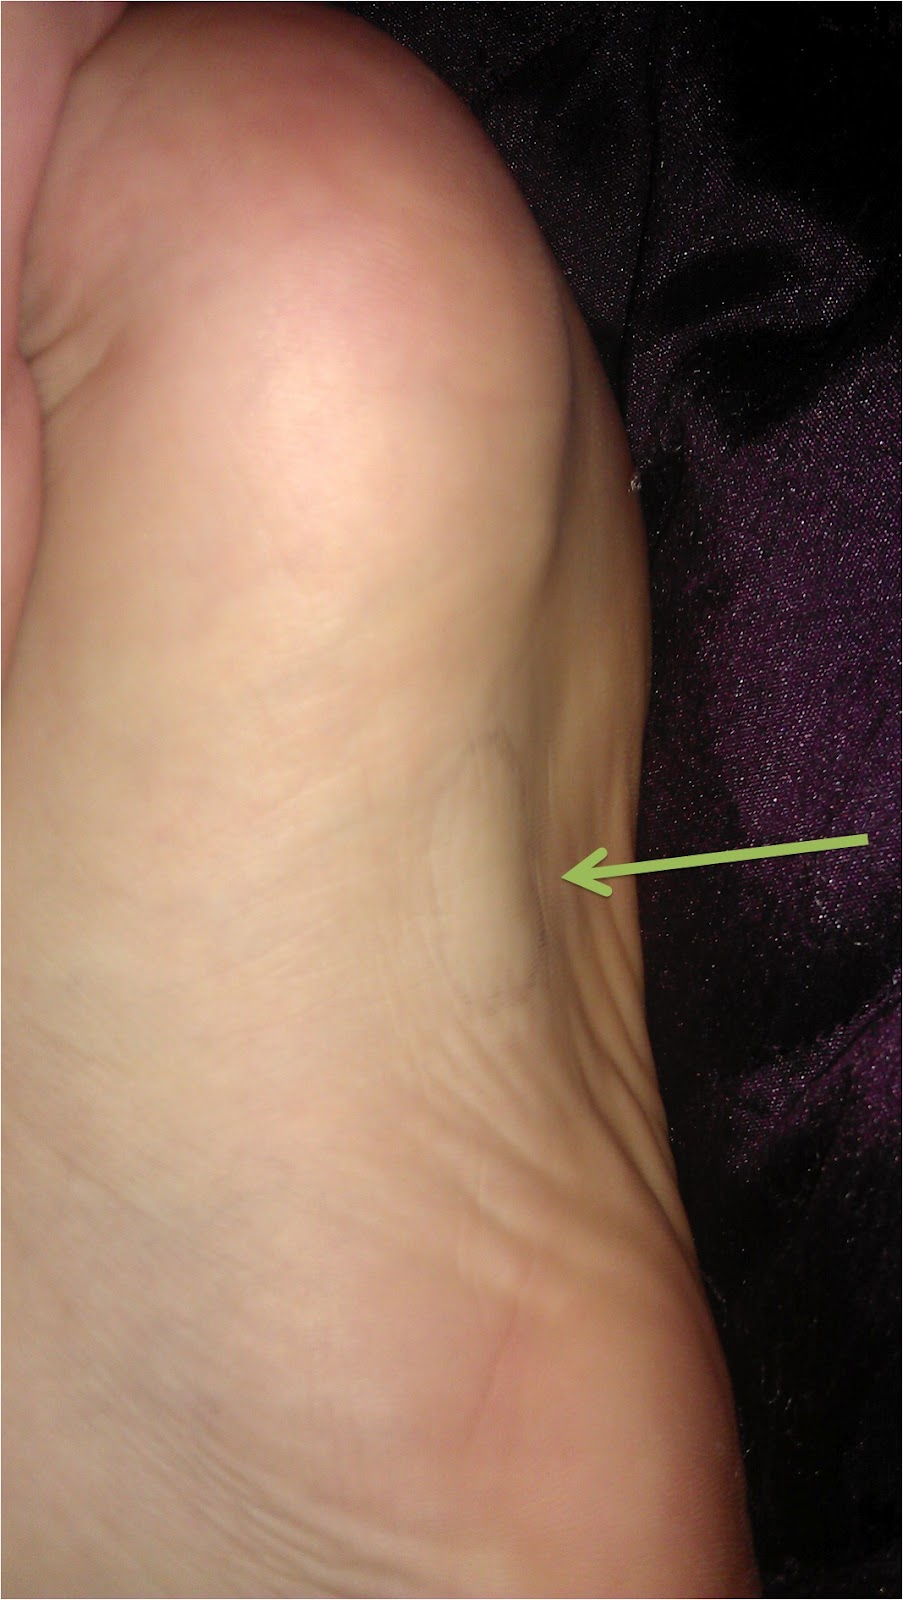 Hard Nodule on the Bottom of My Foot